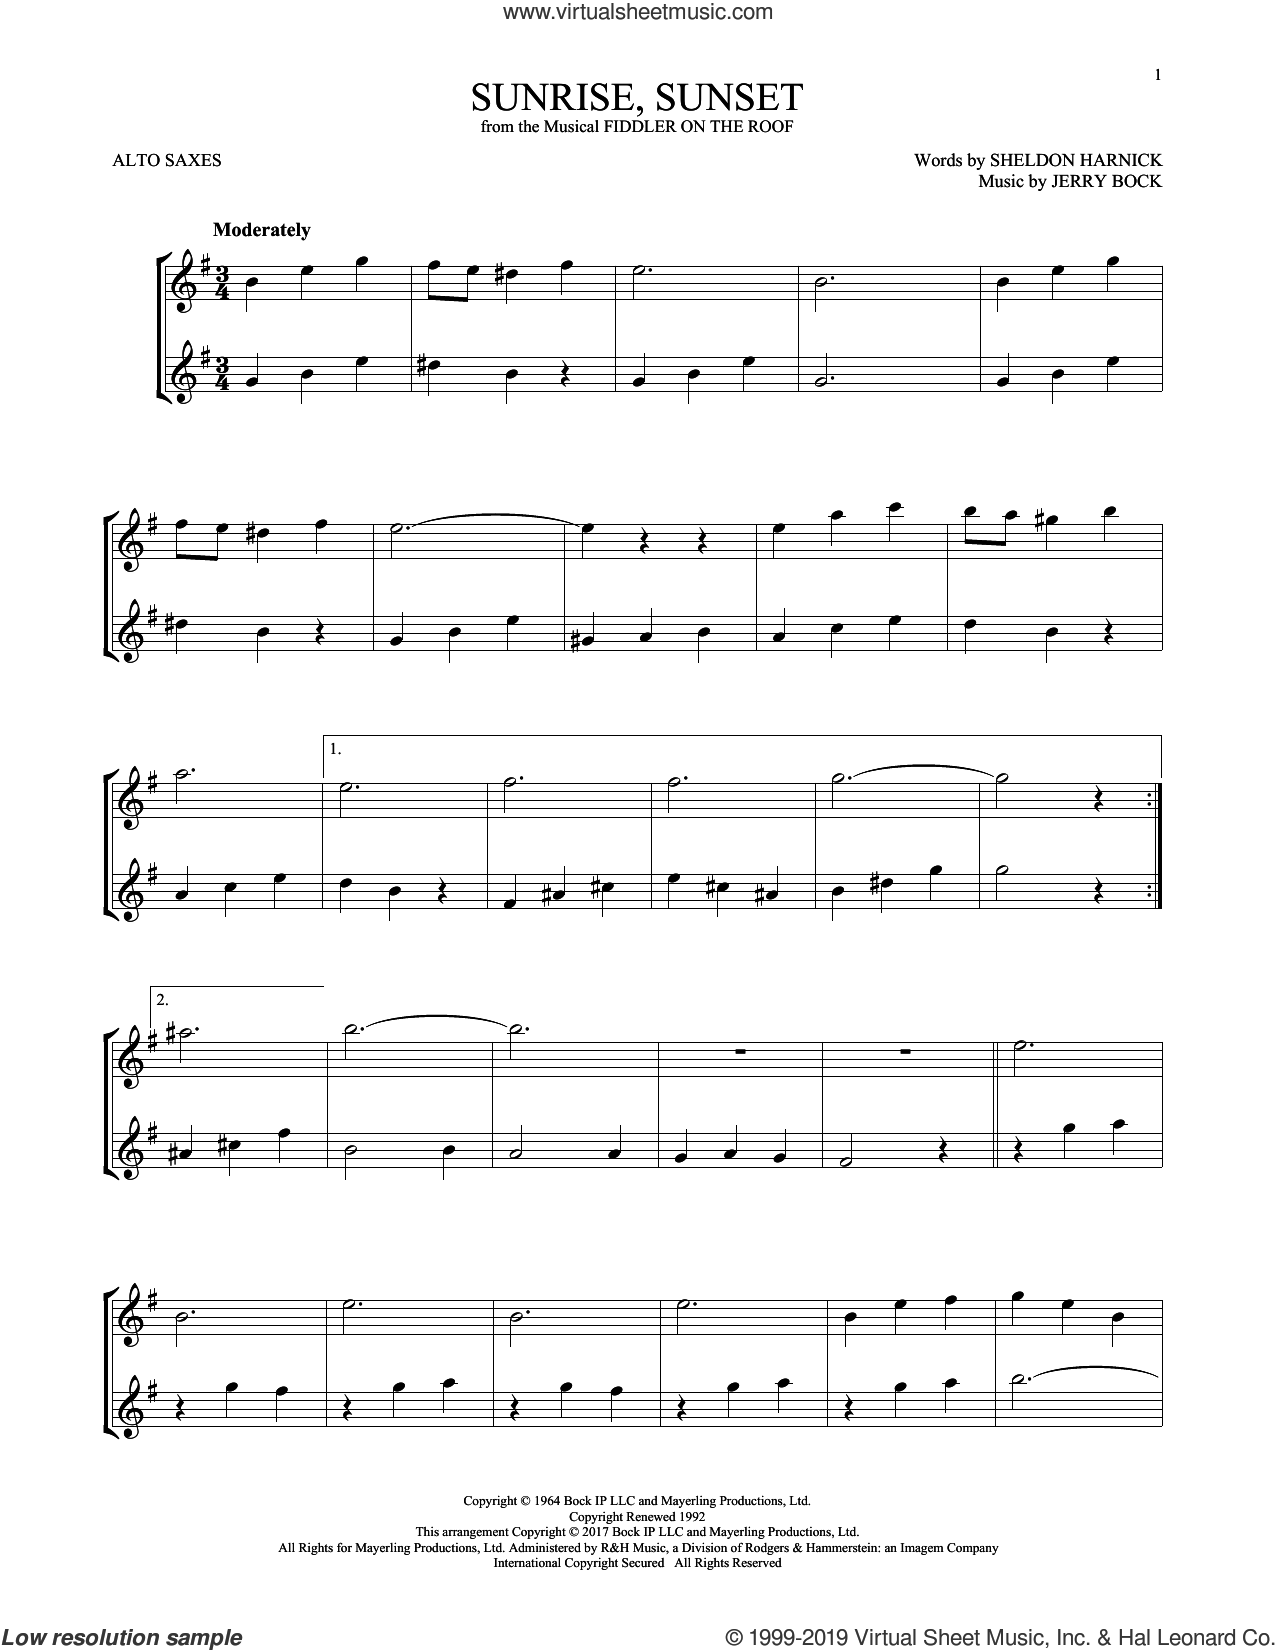 Sunrise, Sunset (from Fiddler On The Roof) sheet music for two alto saxophones (duets) by Jerry Bock and Sheldon Harnick, intermediate skill level